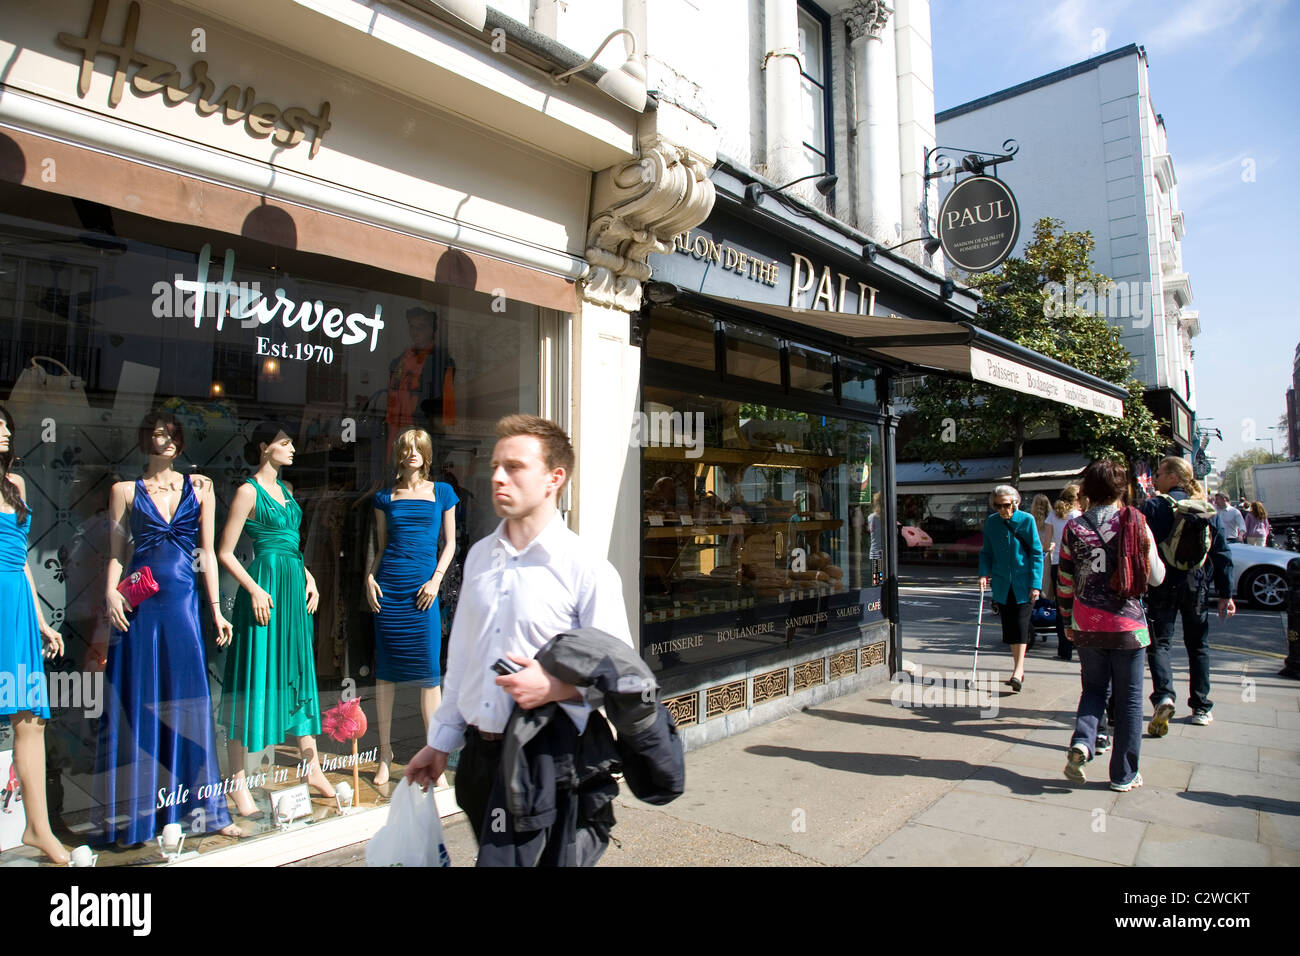 Pedestrians And Shops On Kings Road In Chelsea London Stock Photo Alamy